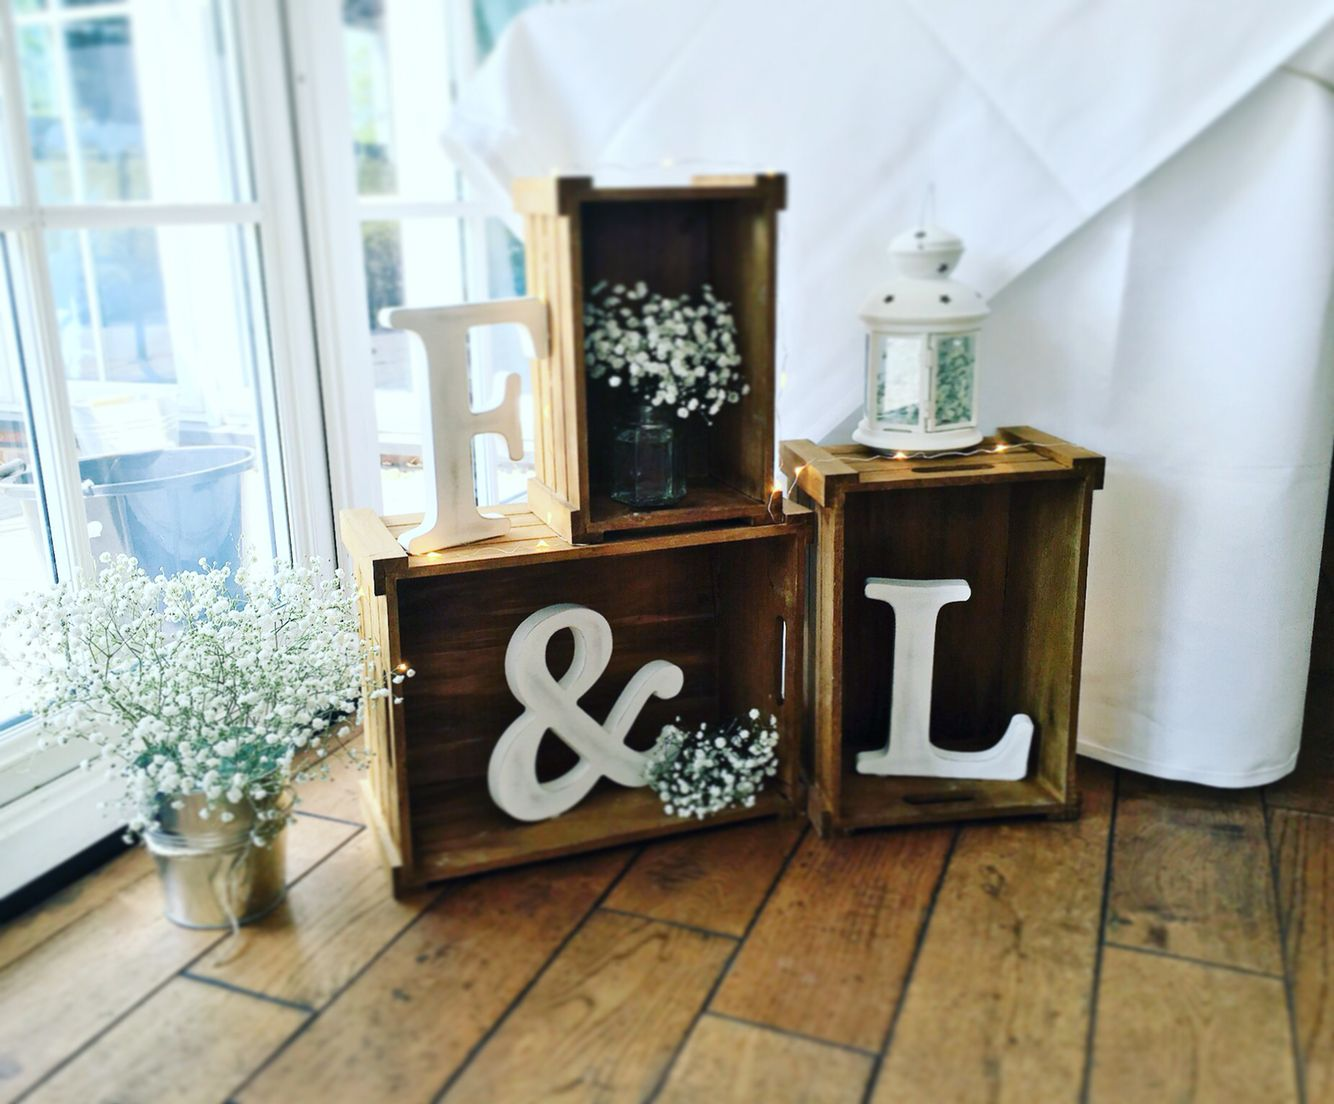 Wood Crates Used For A Simple Rustic Wedding Decoration With The Bride And Grooms Initials Fairy Lights And Gy Rustic Wedding Decor Wedding Crates Crate Decor